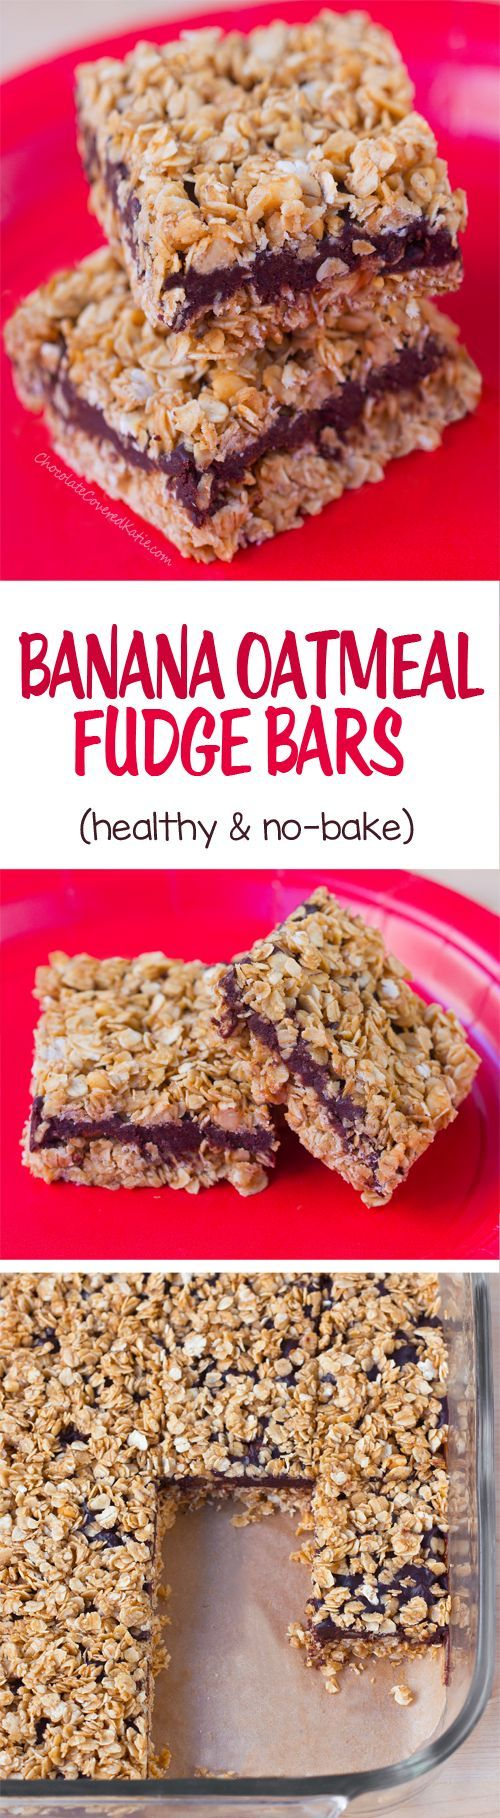 130 best Healthy Food: Desserts images on Pinterest | Kitchen ...